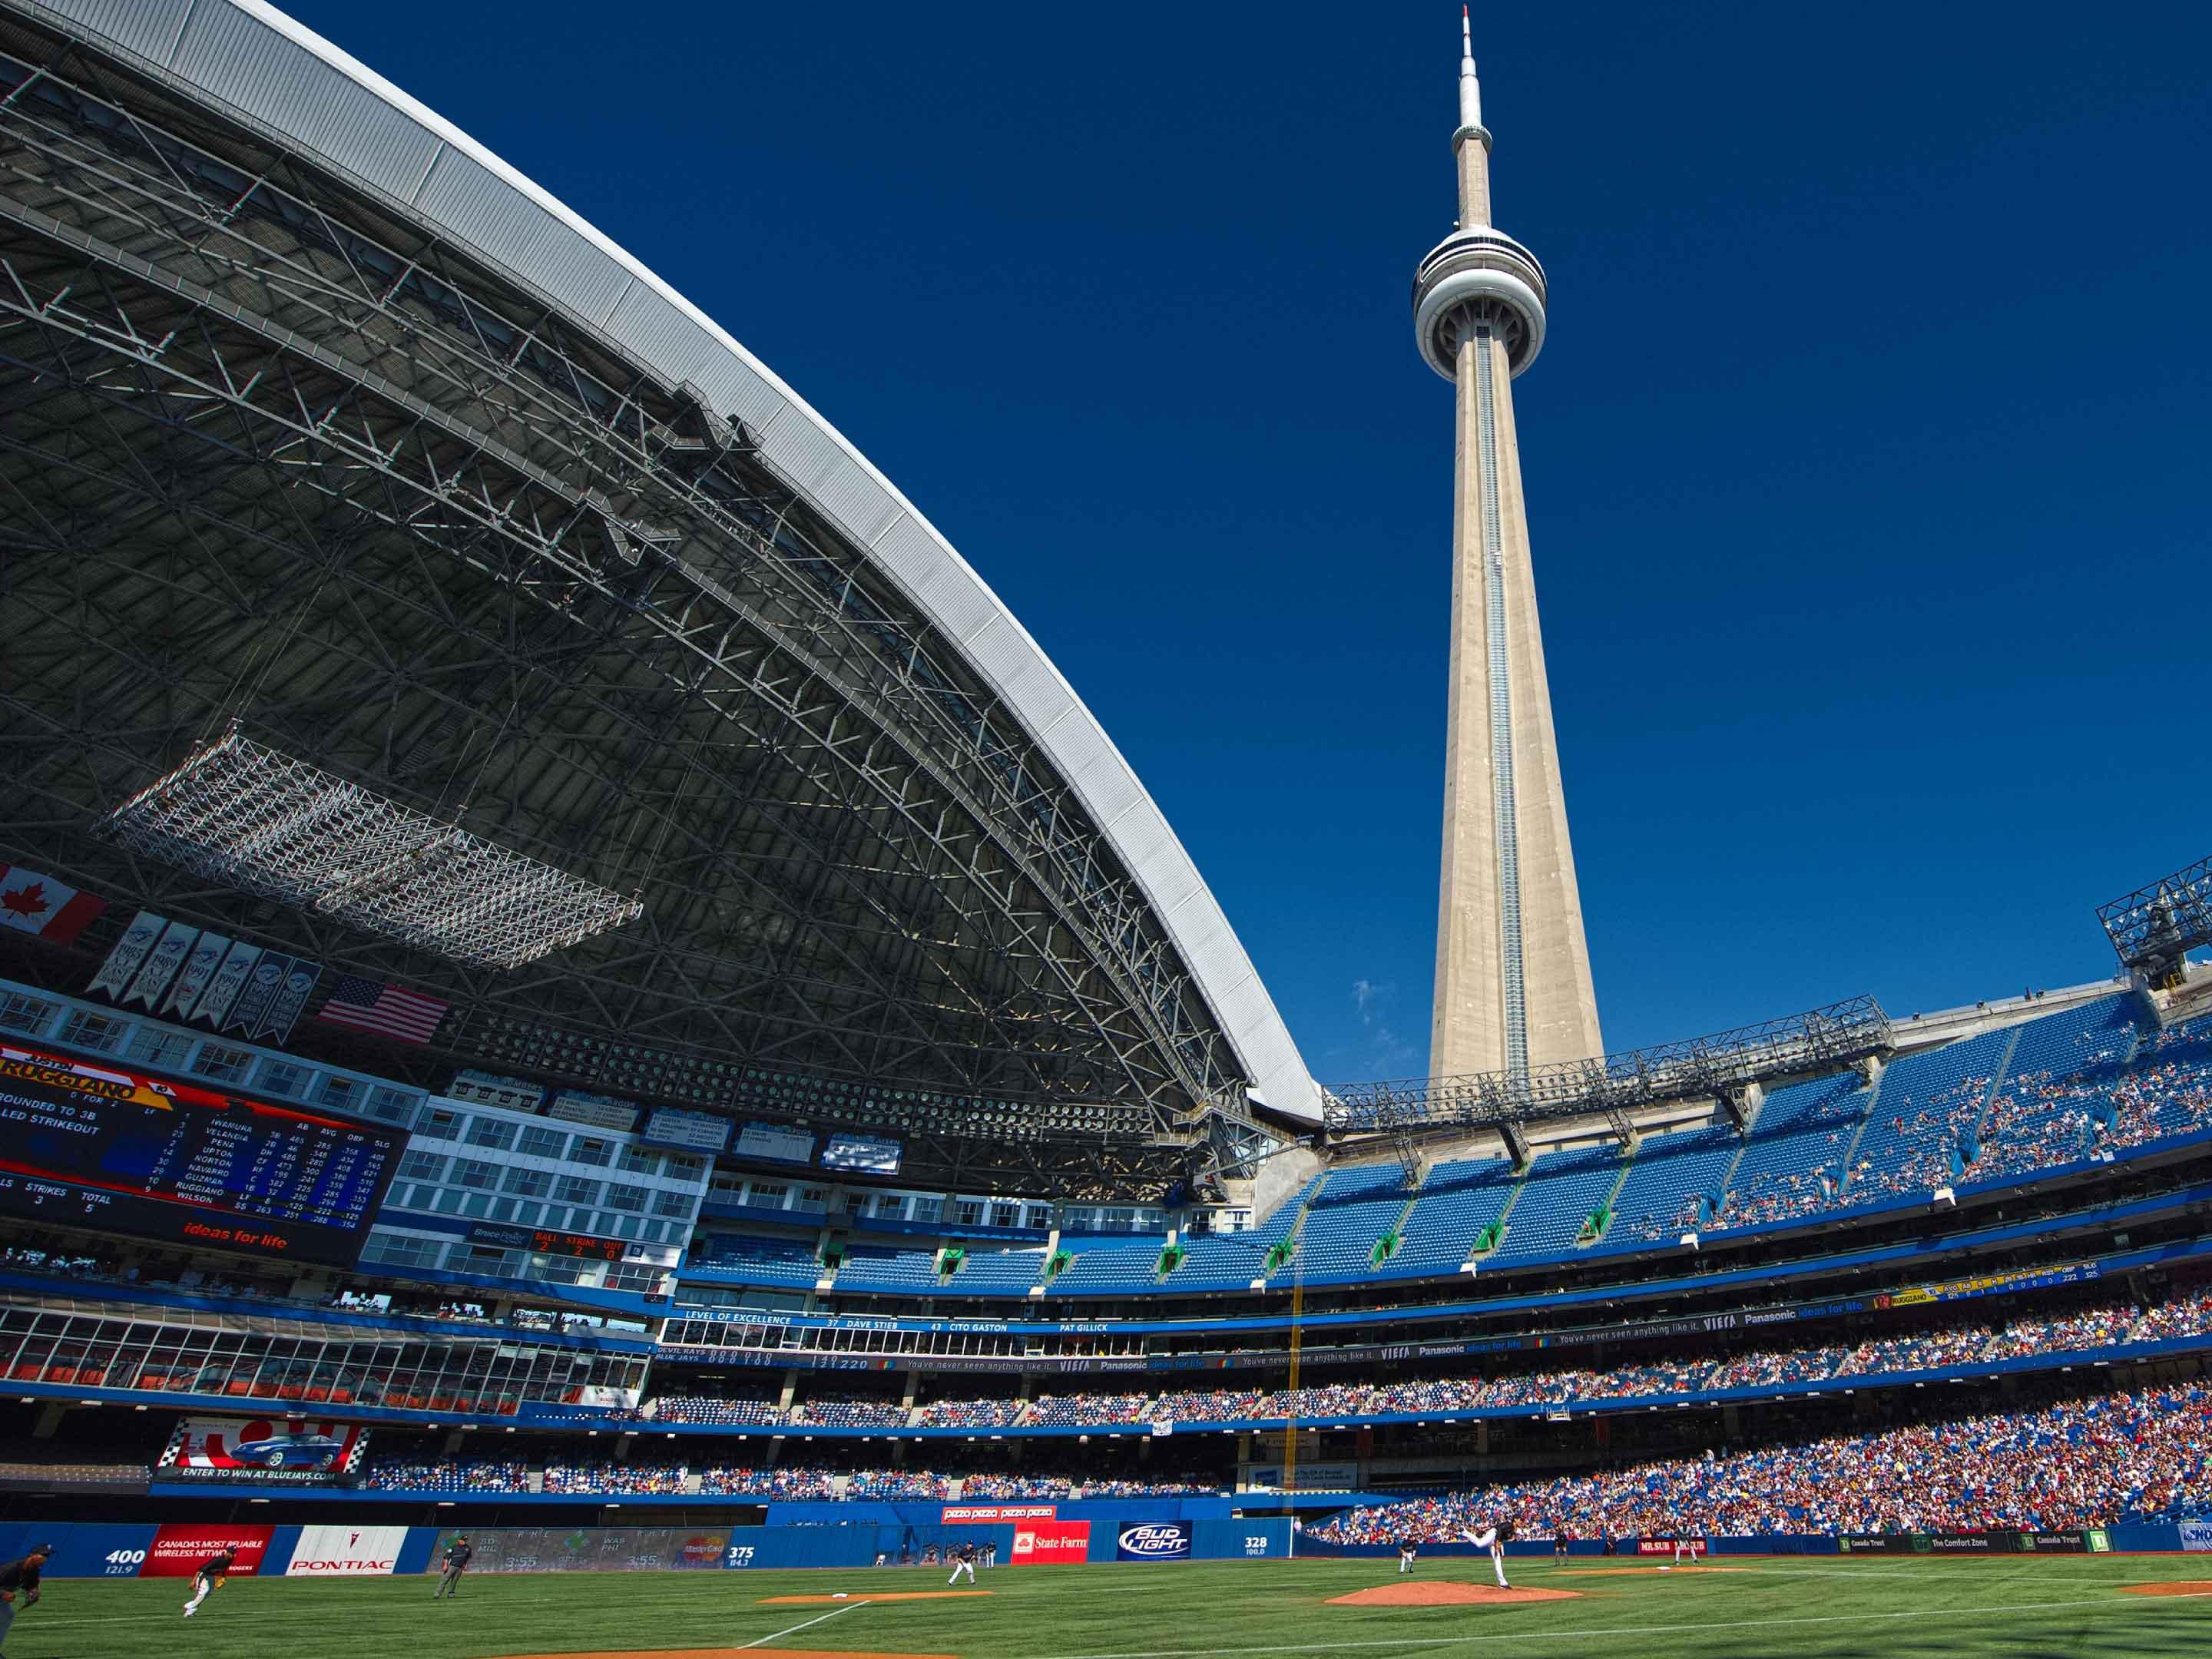 CN Tower & Rogers Centre - Catch a Blue Jay's Game or See the City